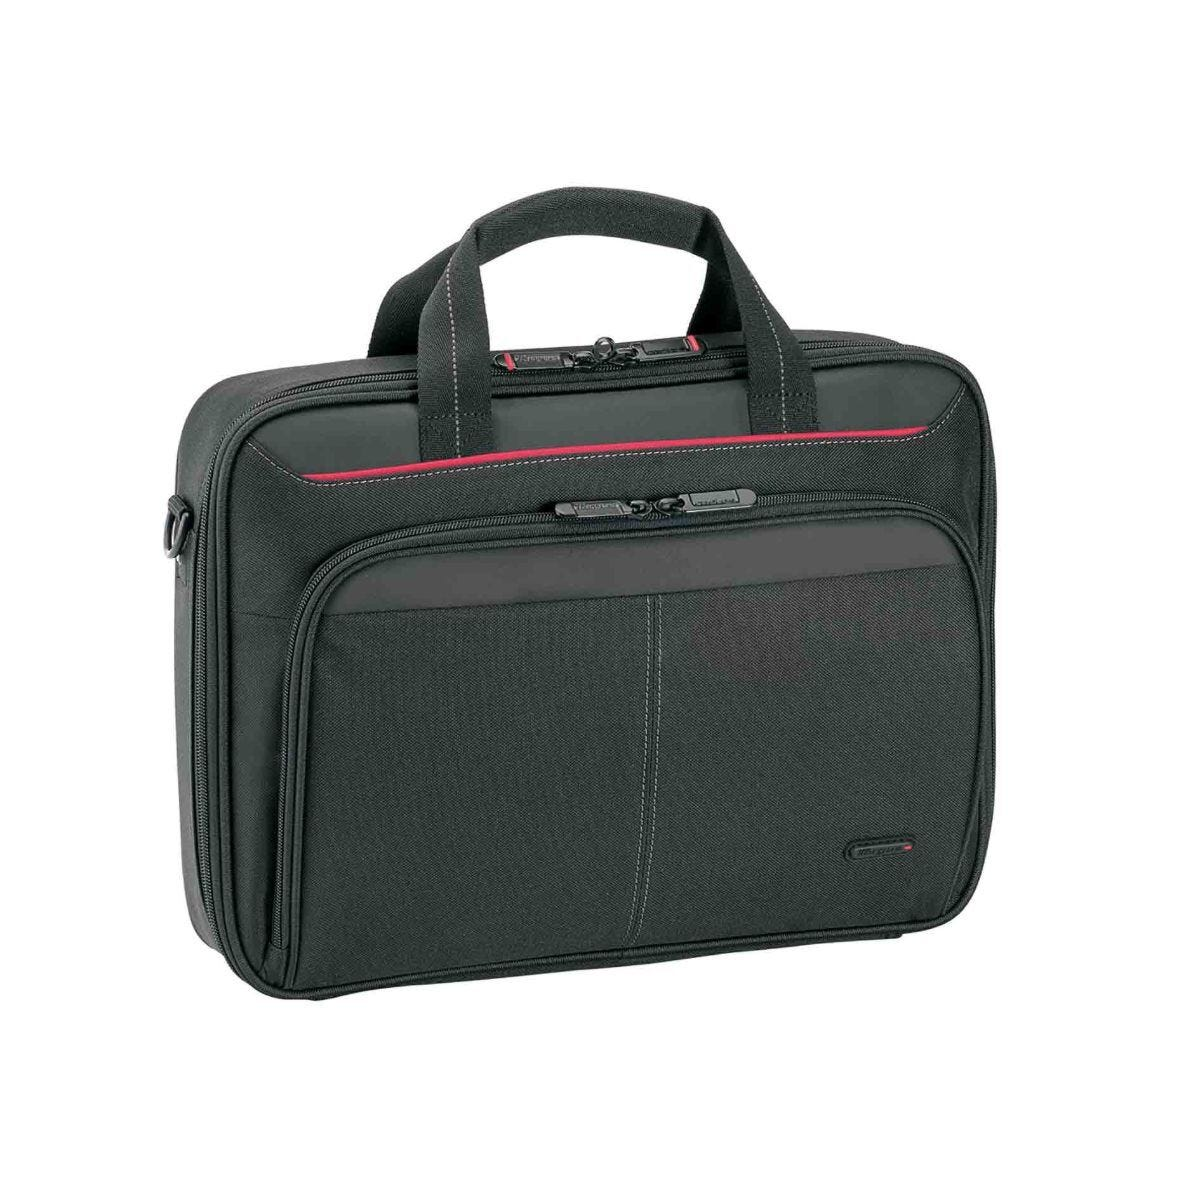 Targus Classic Clamshell Laptop Bag 12-13.4 Inch